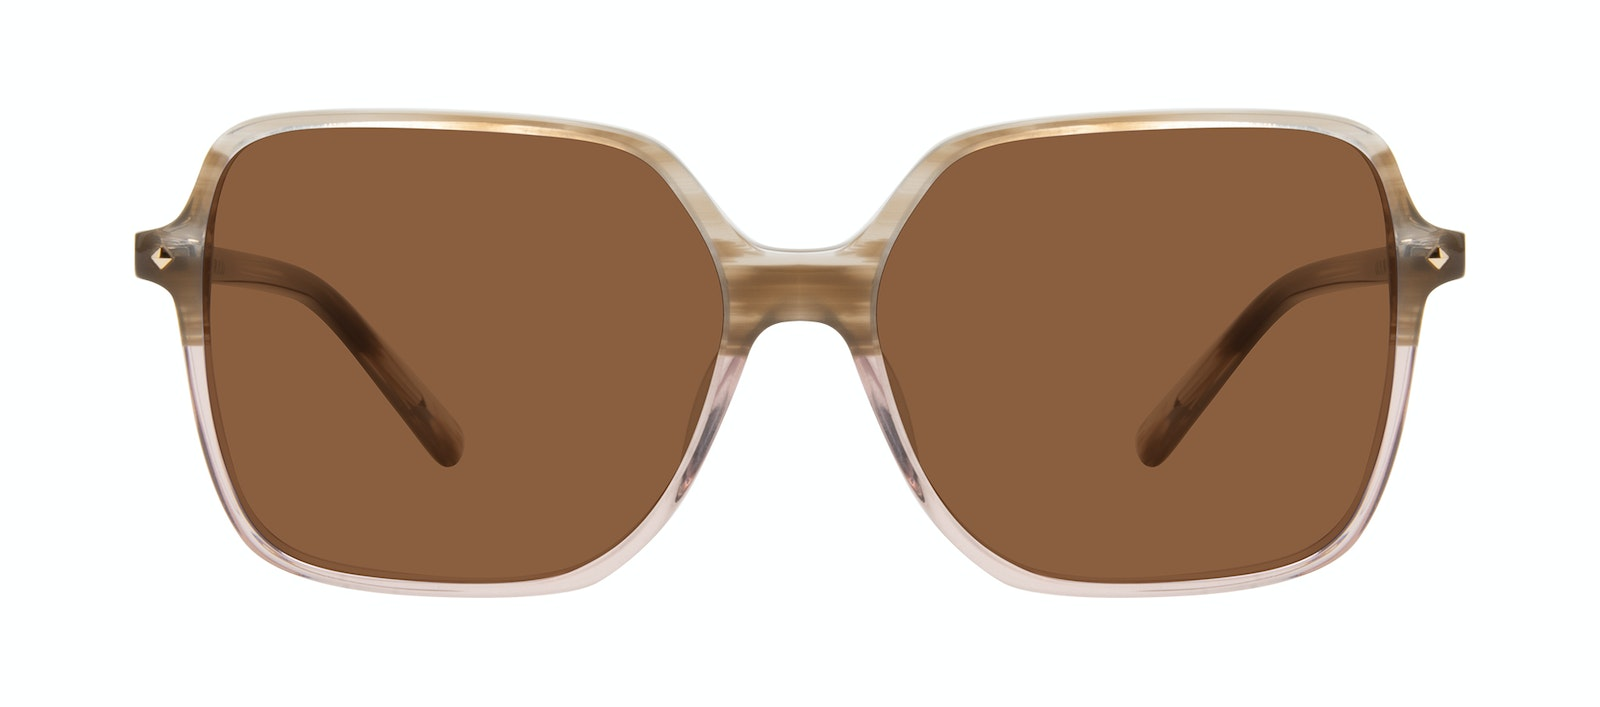 Affordable Fashion Glasses Square Sunglasses Women Major Rosewood Front